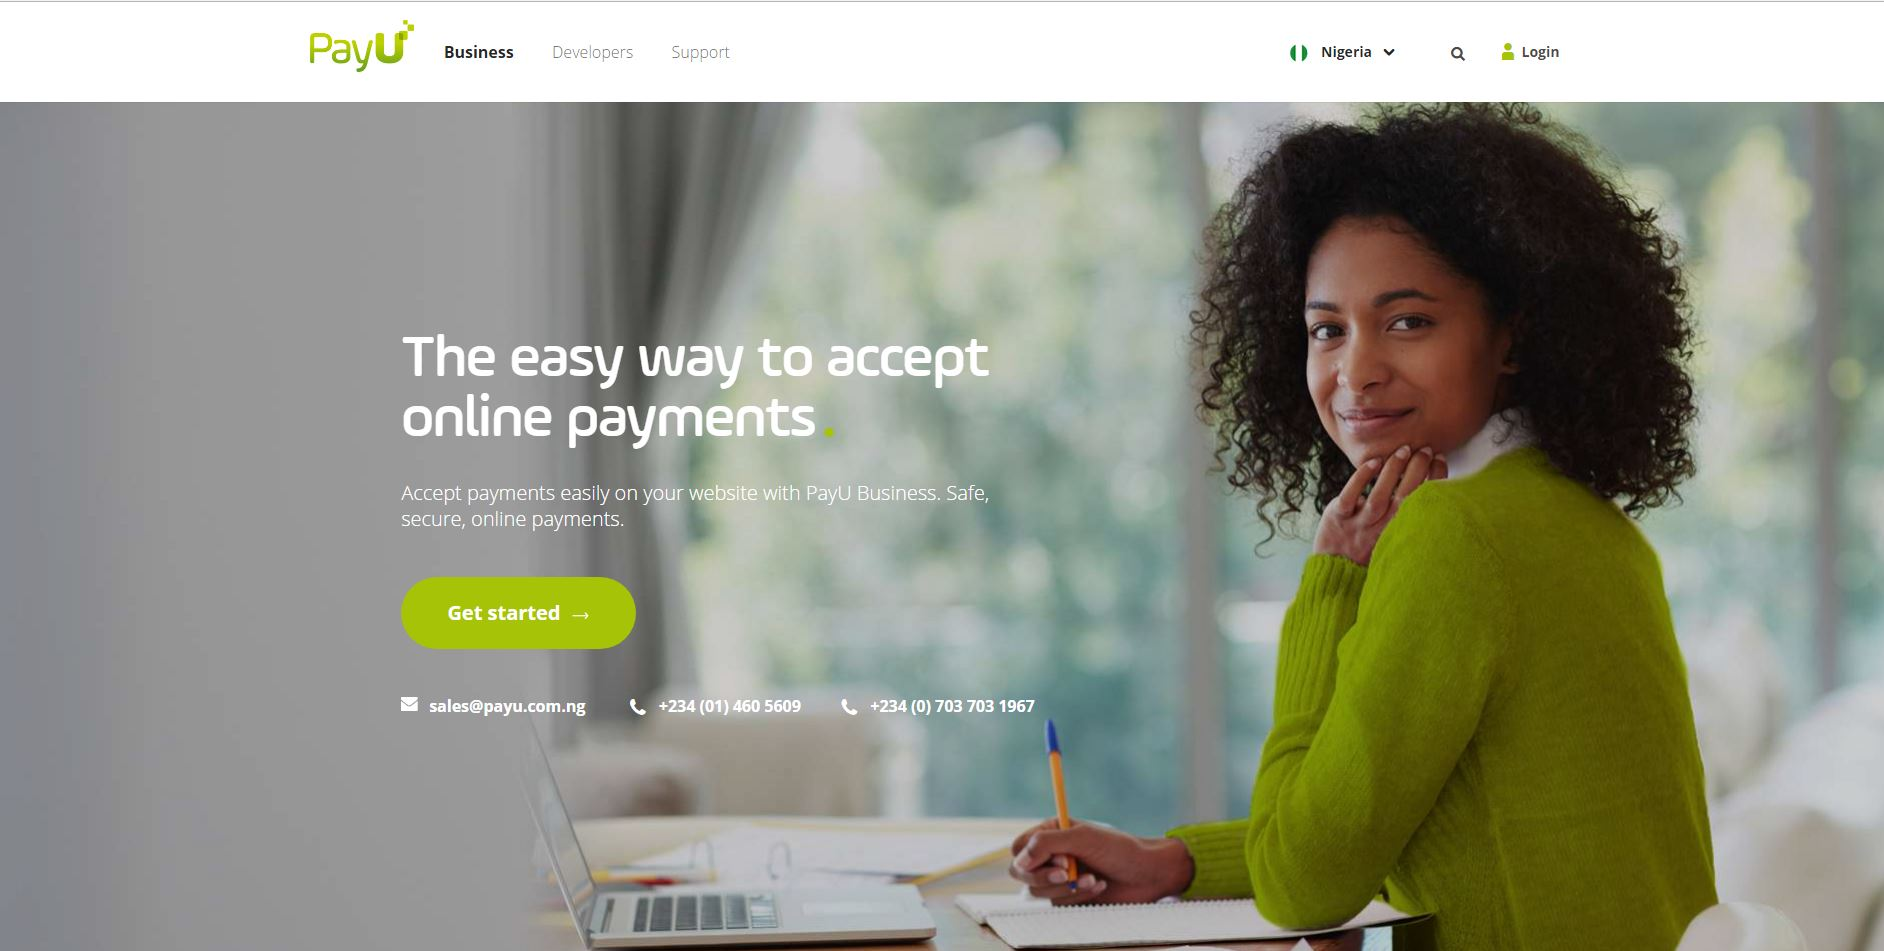 PayU moves to connect businesses to N200bn online payment market